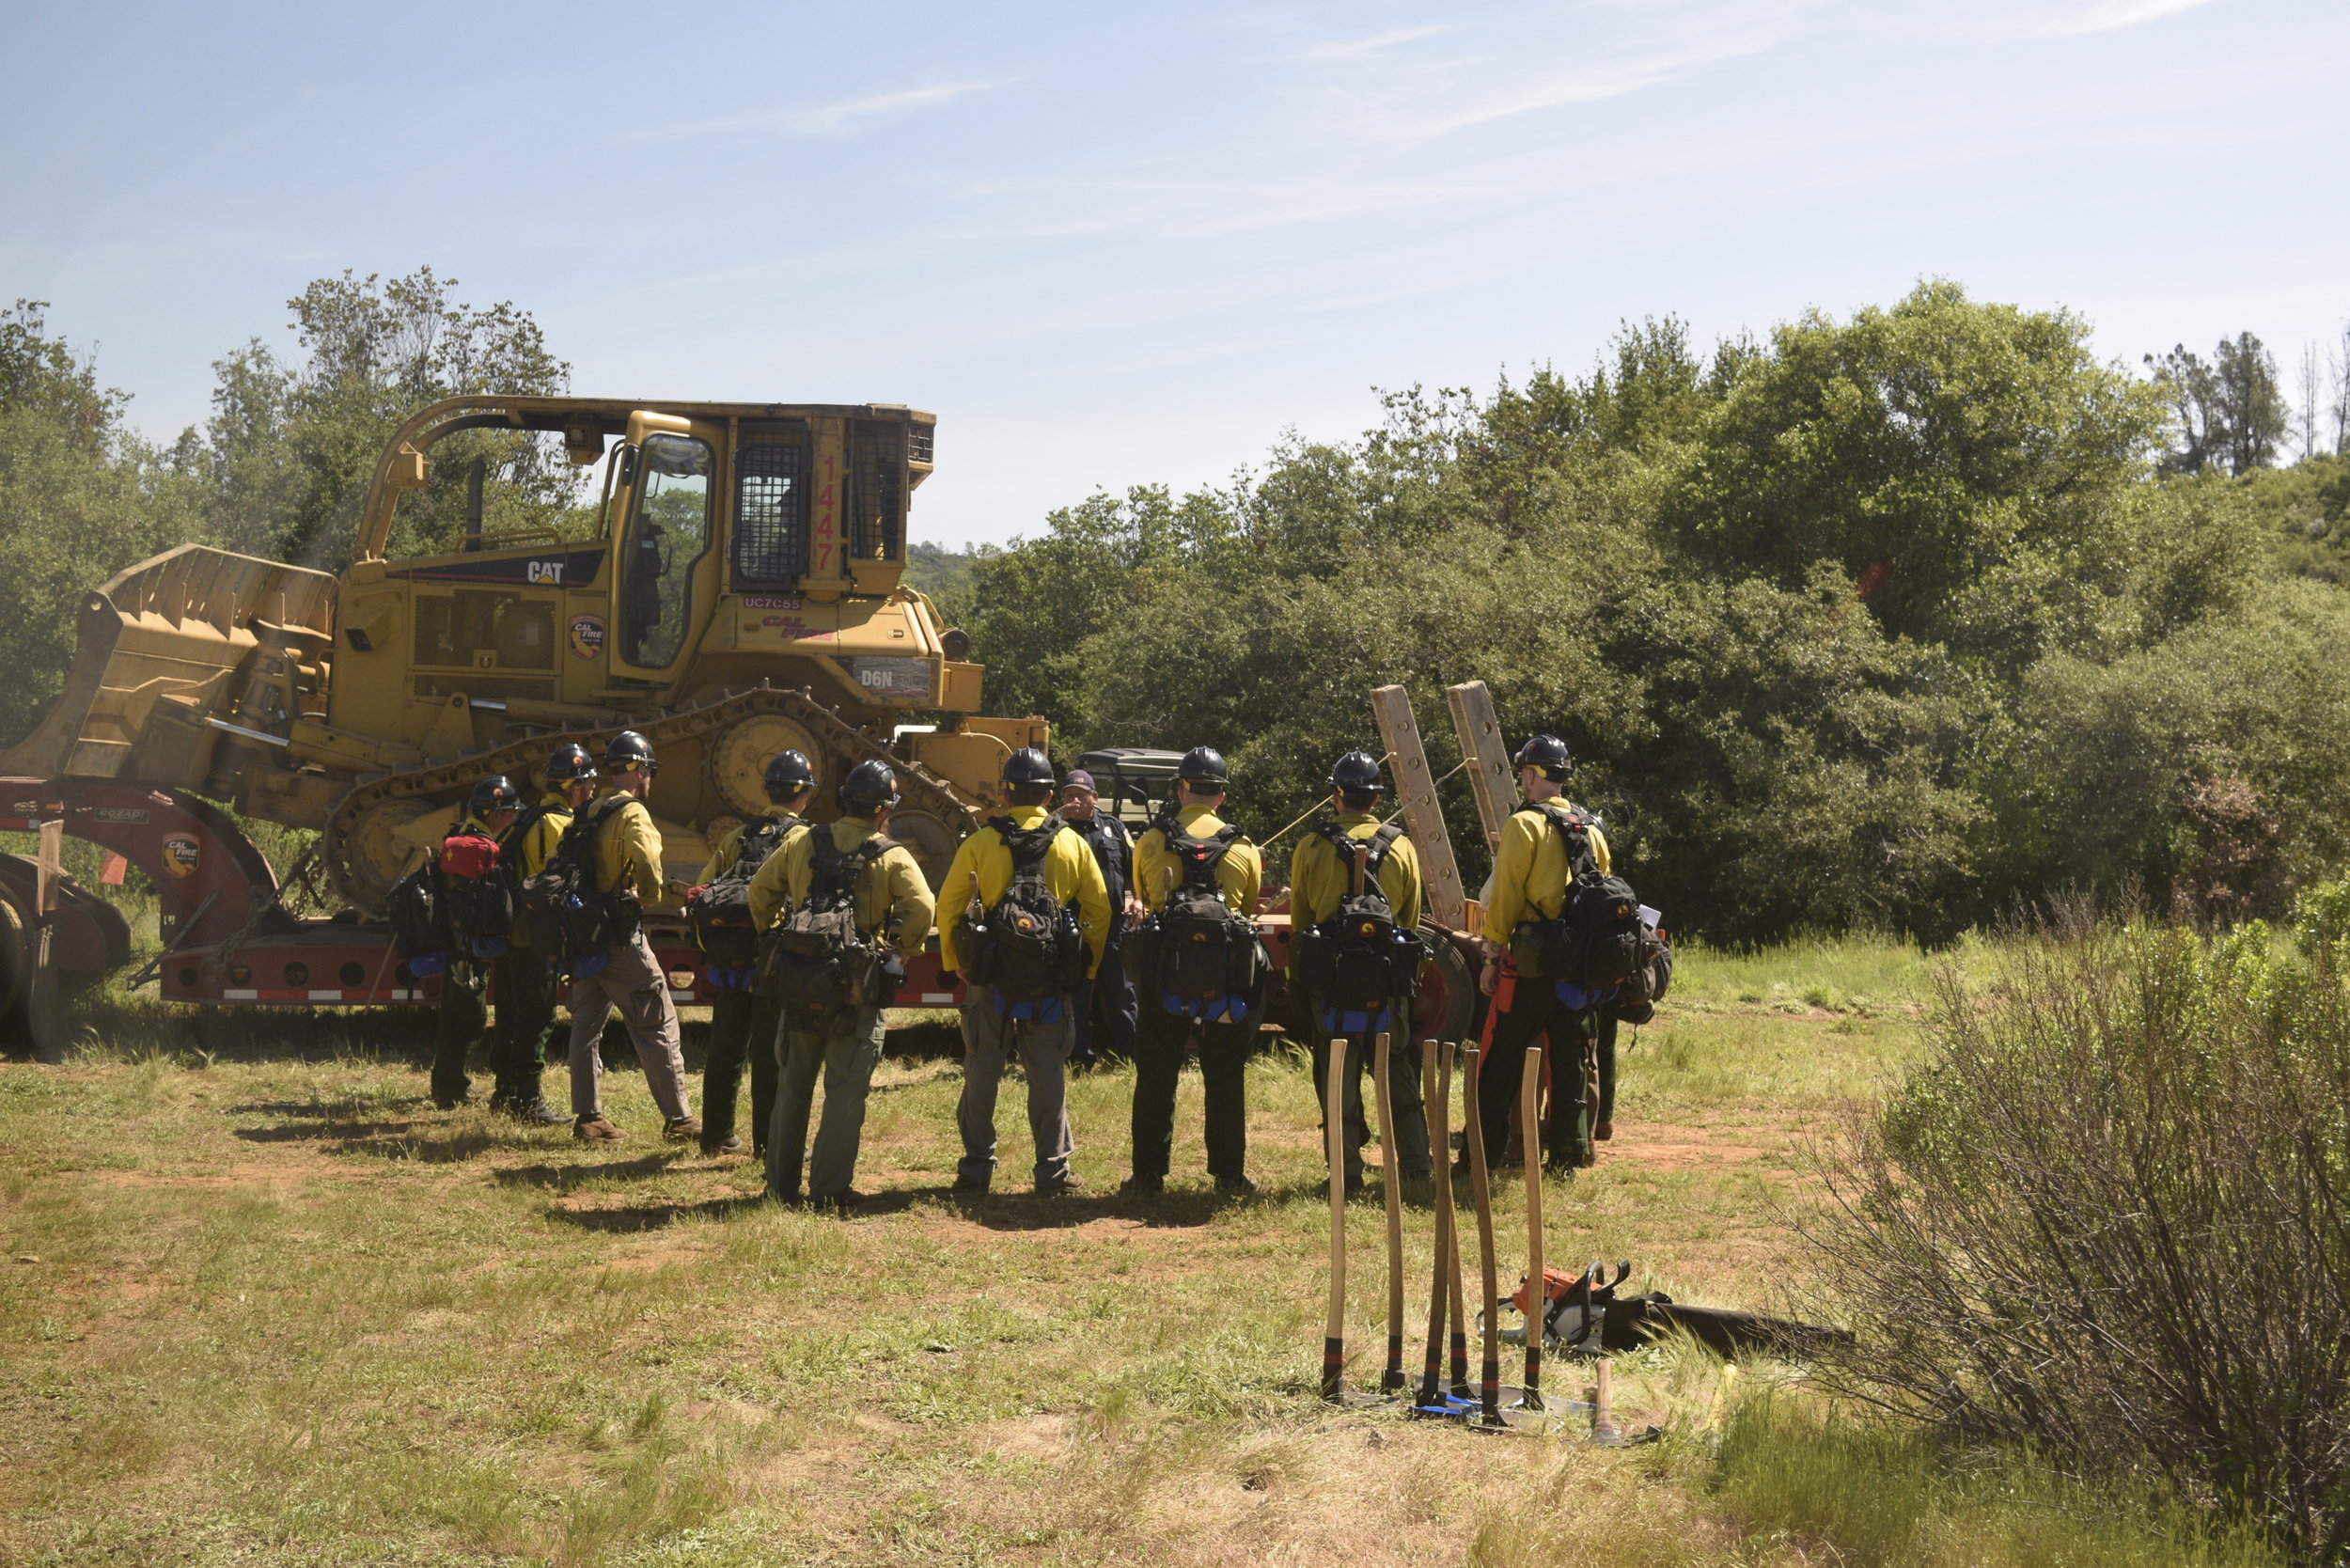 Dozer - operators gather for further instructions during training.